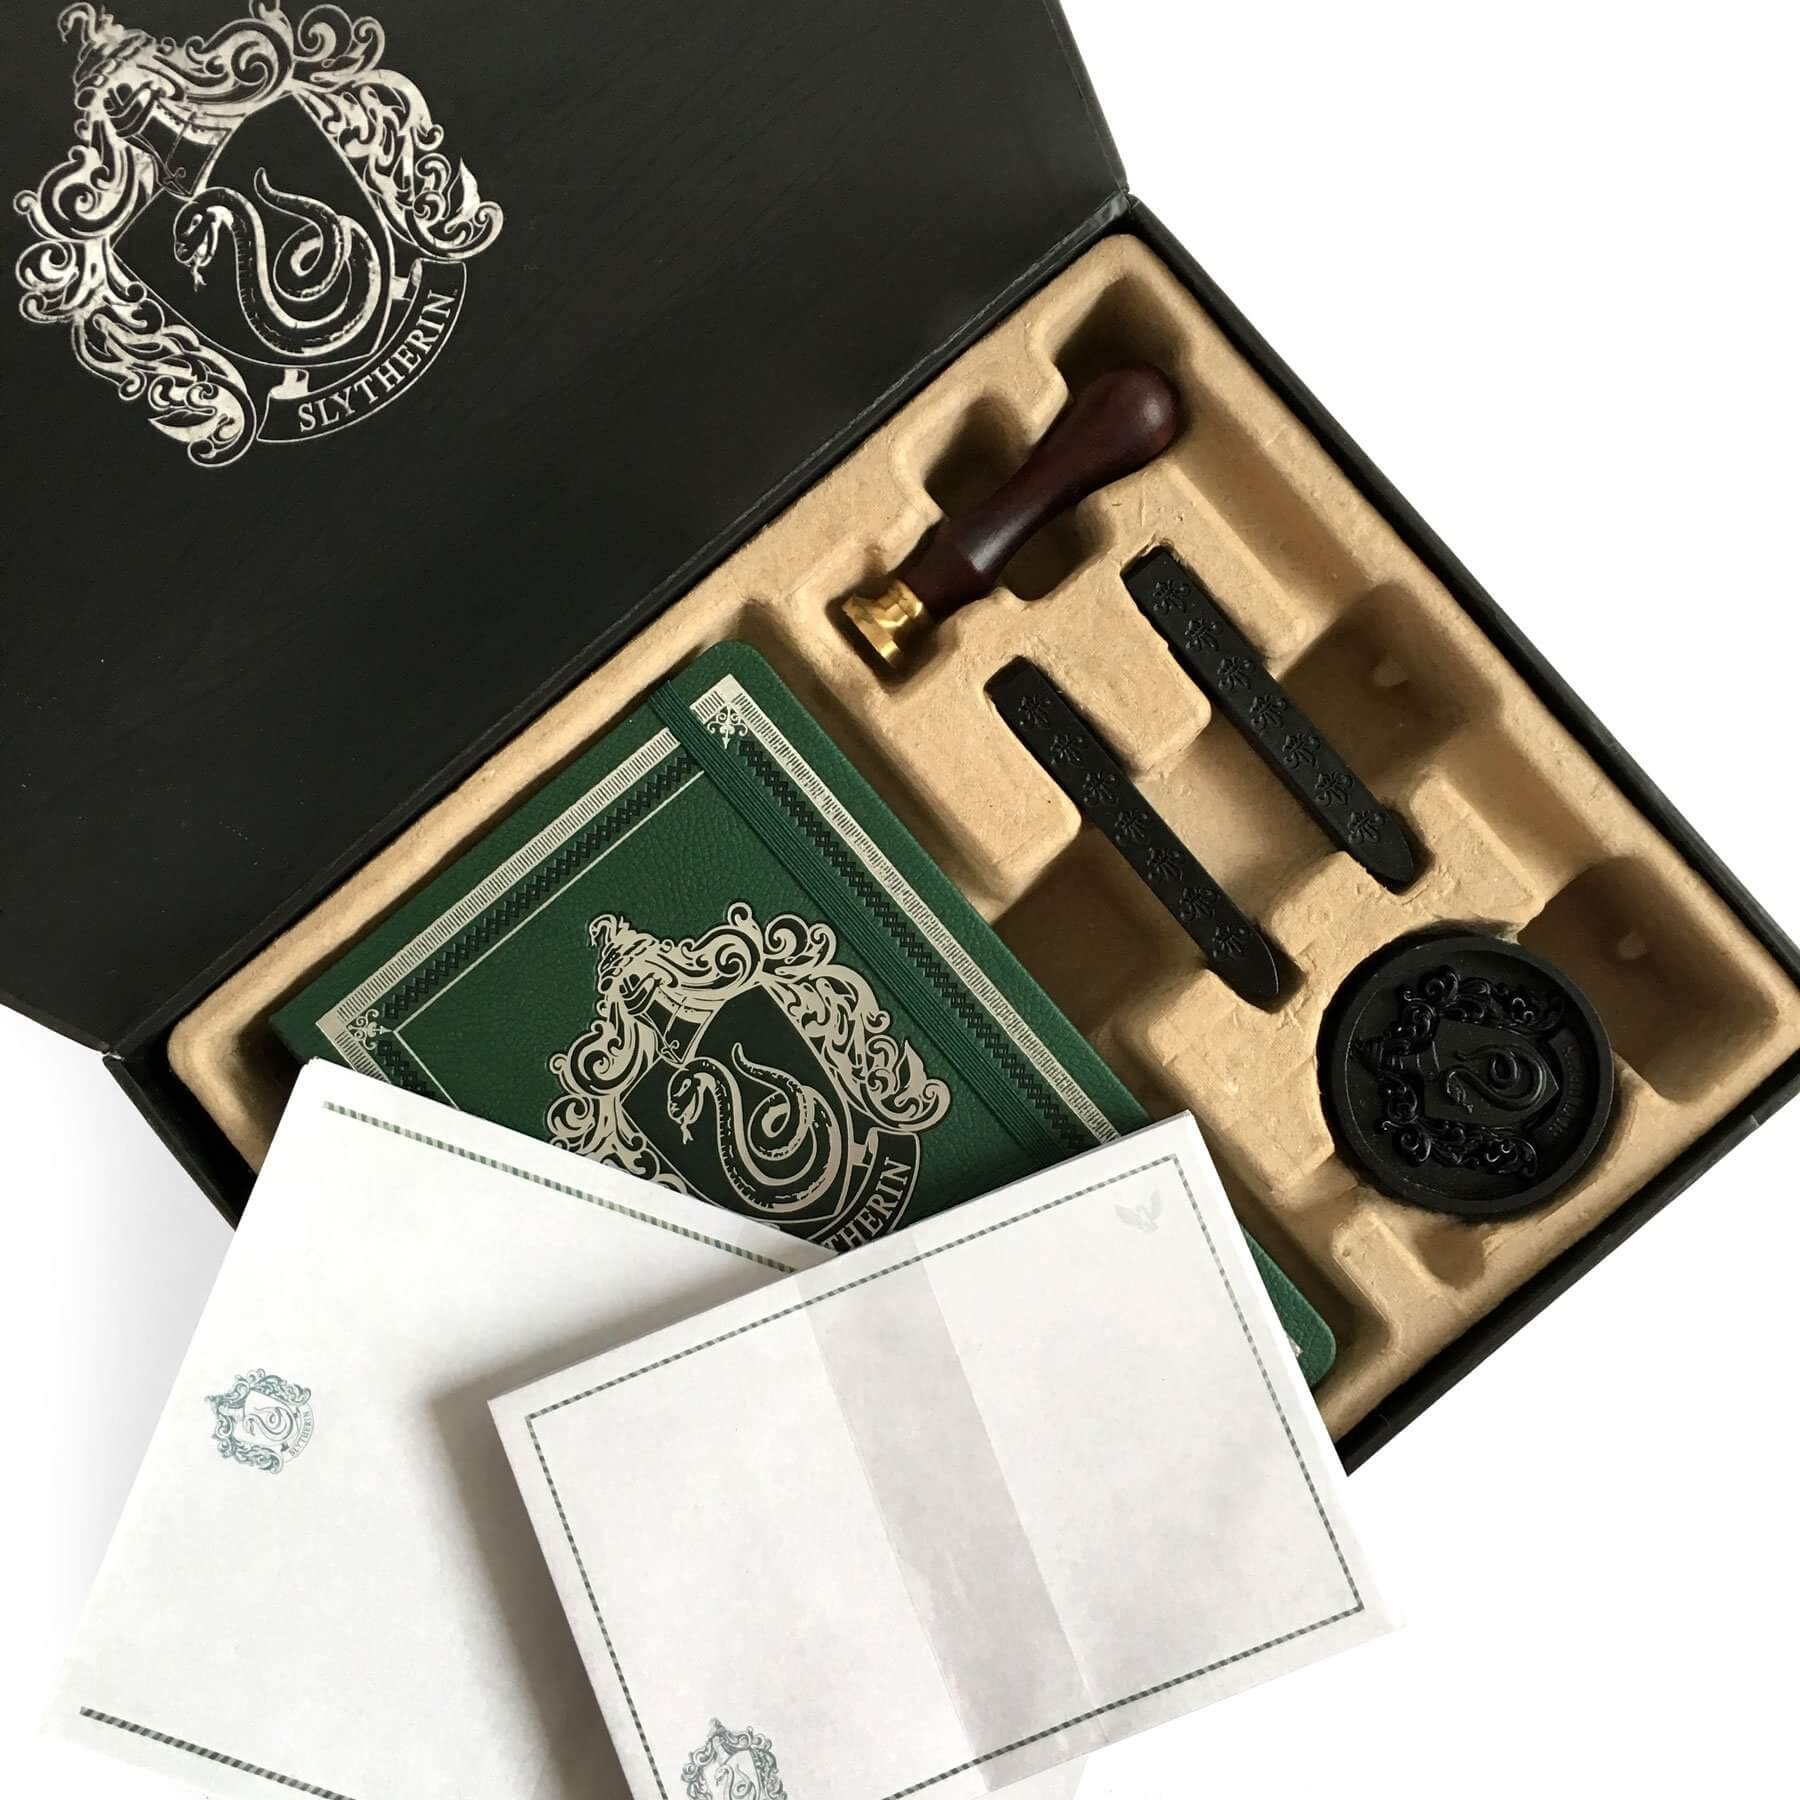 SET DE PAPETERIE DELUXE SERPENTARD - HARRY POTTER - la boutique du sorcier